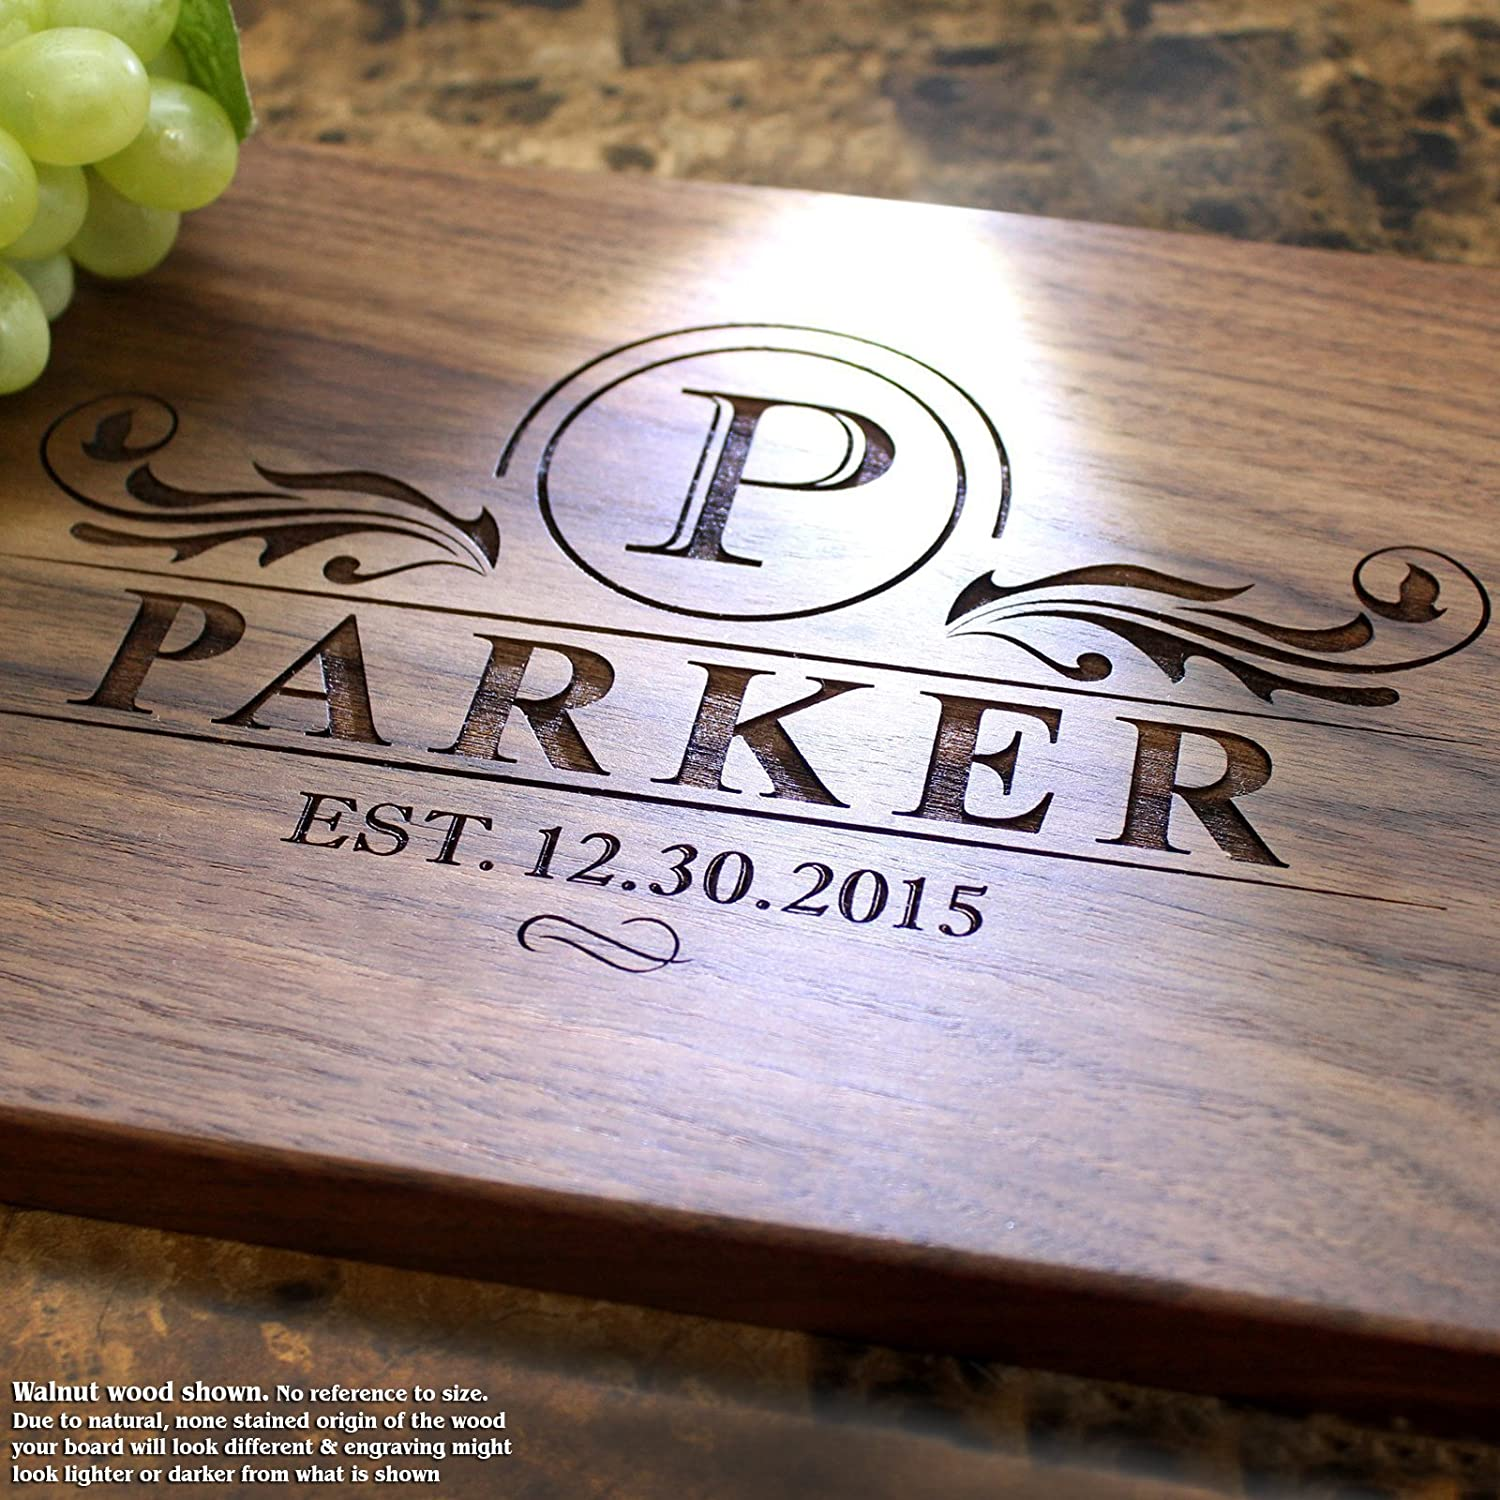 Personalized Cutting Board, Custom Keepsake, Engraved Serving Cheese Plate, Wedding, Anniversary, Engagement, Housewarming, Birthday, Corporate, Closing Gift #202